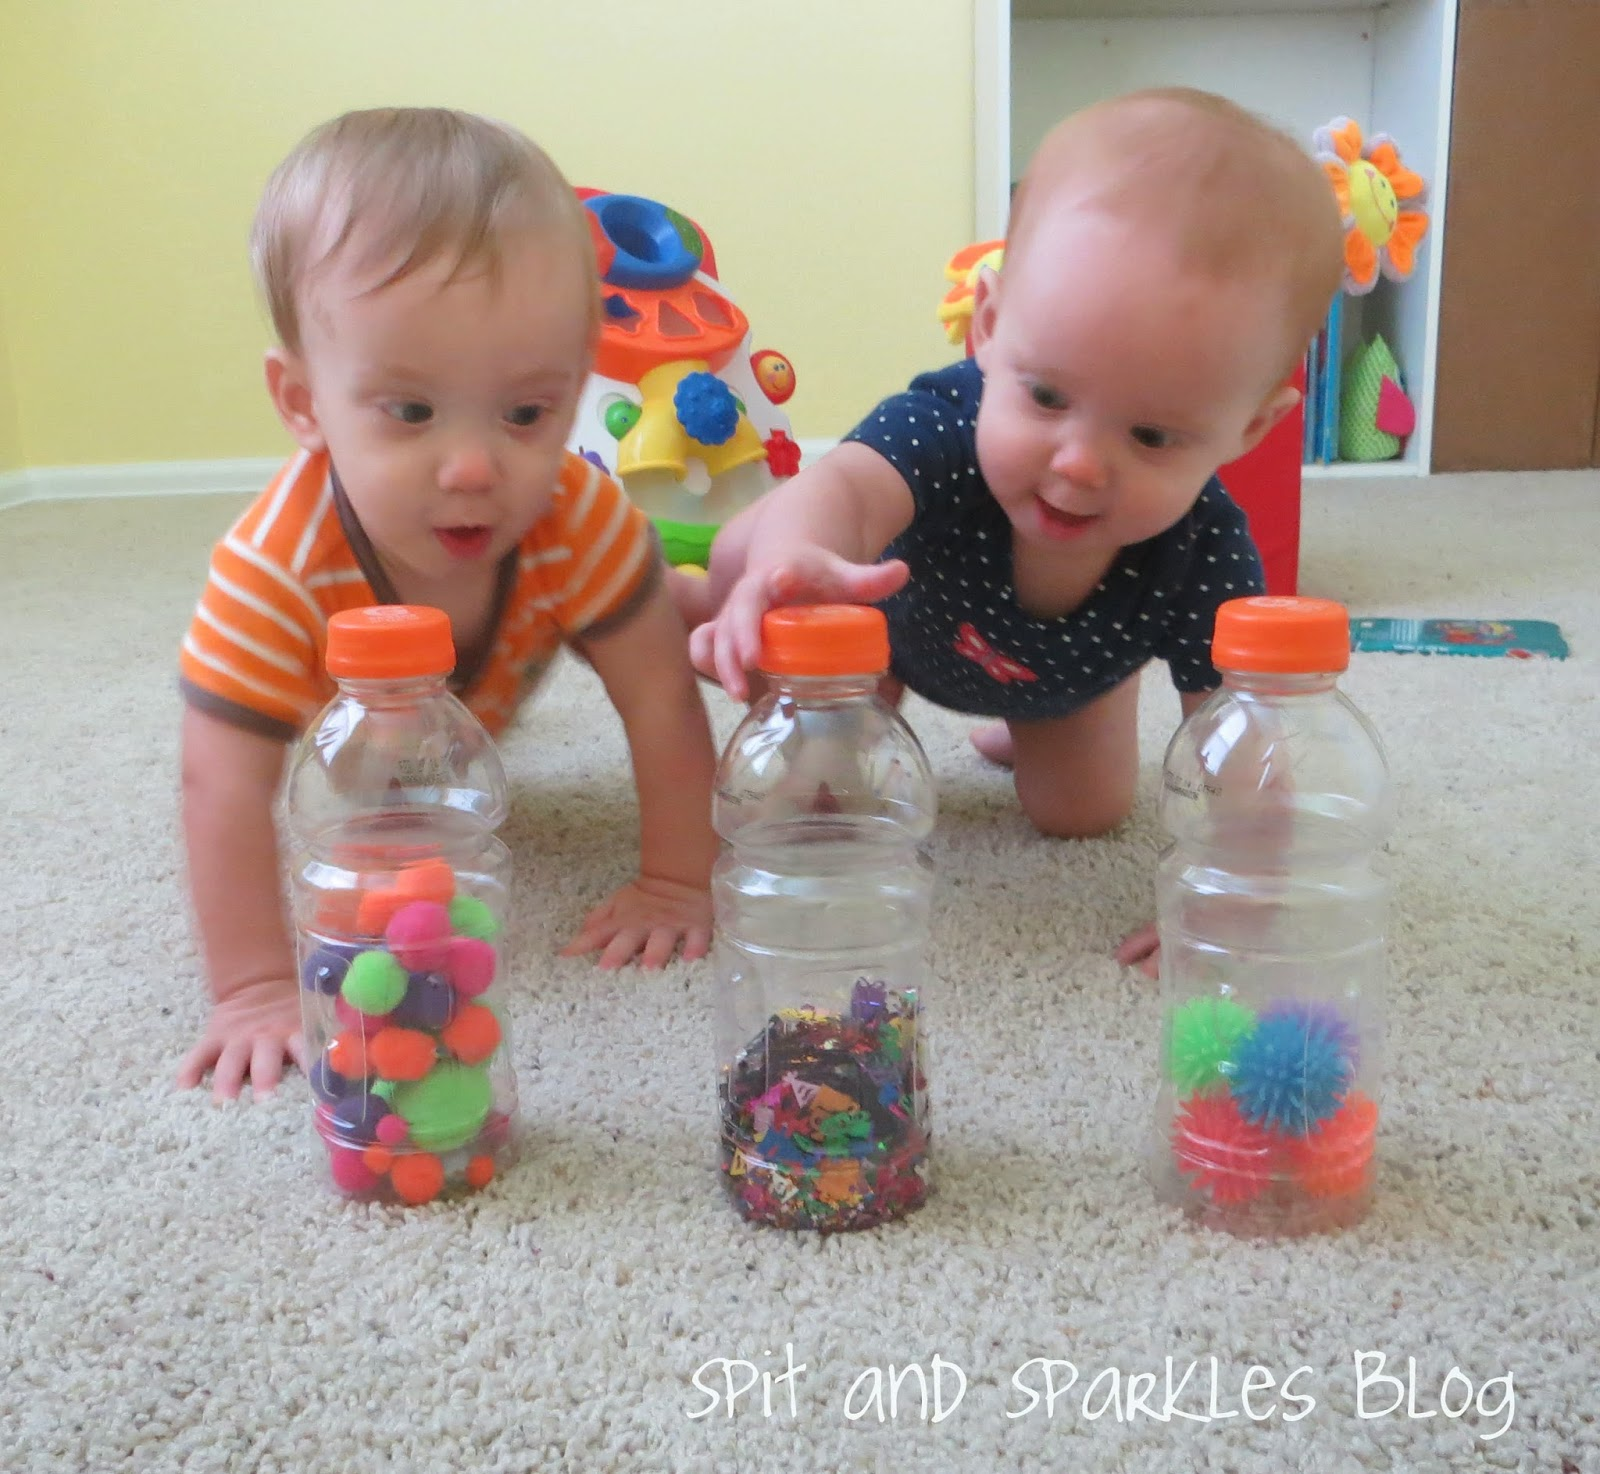 Five tips for planning Tot School on a budget via Spit and Sparkles Blog. #totschool #homeschool #DIY #earlylearning